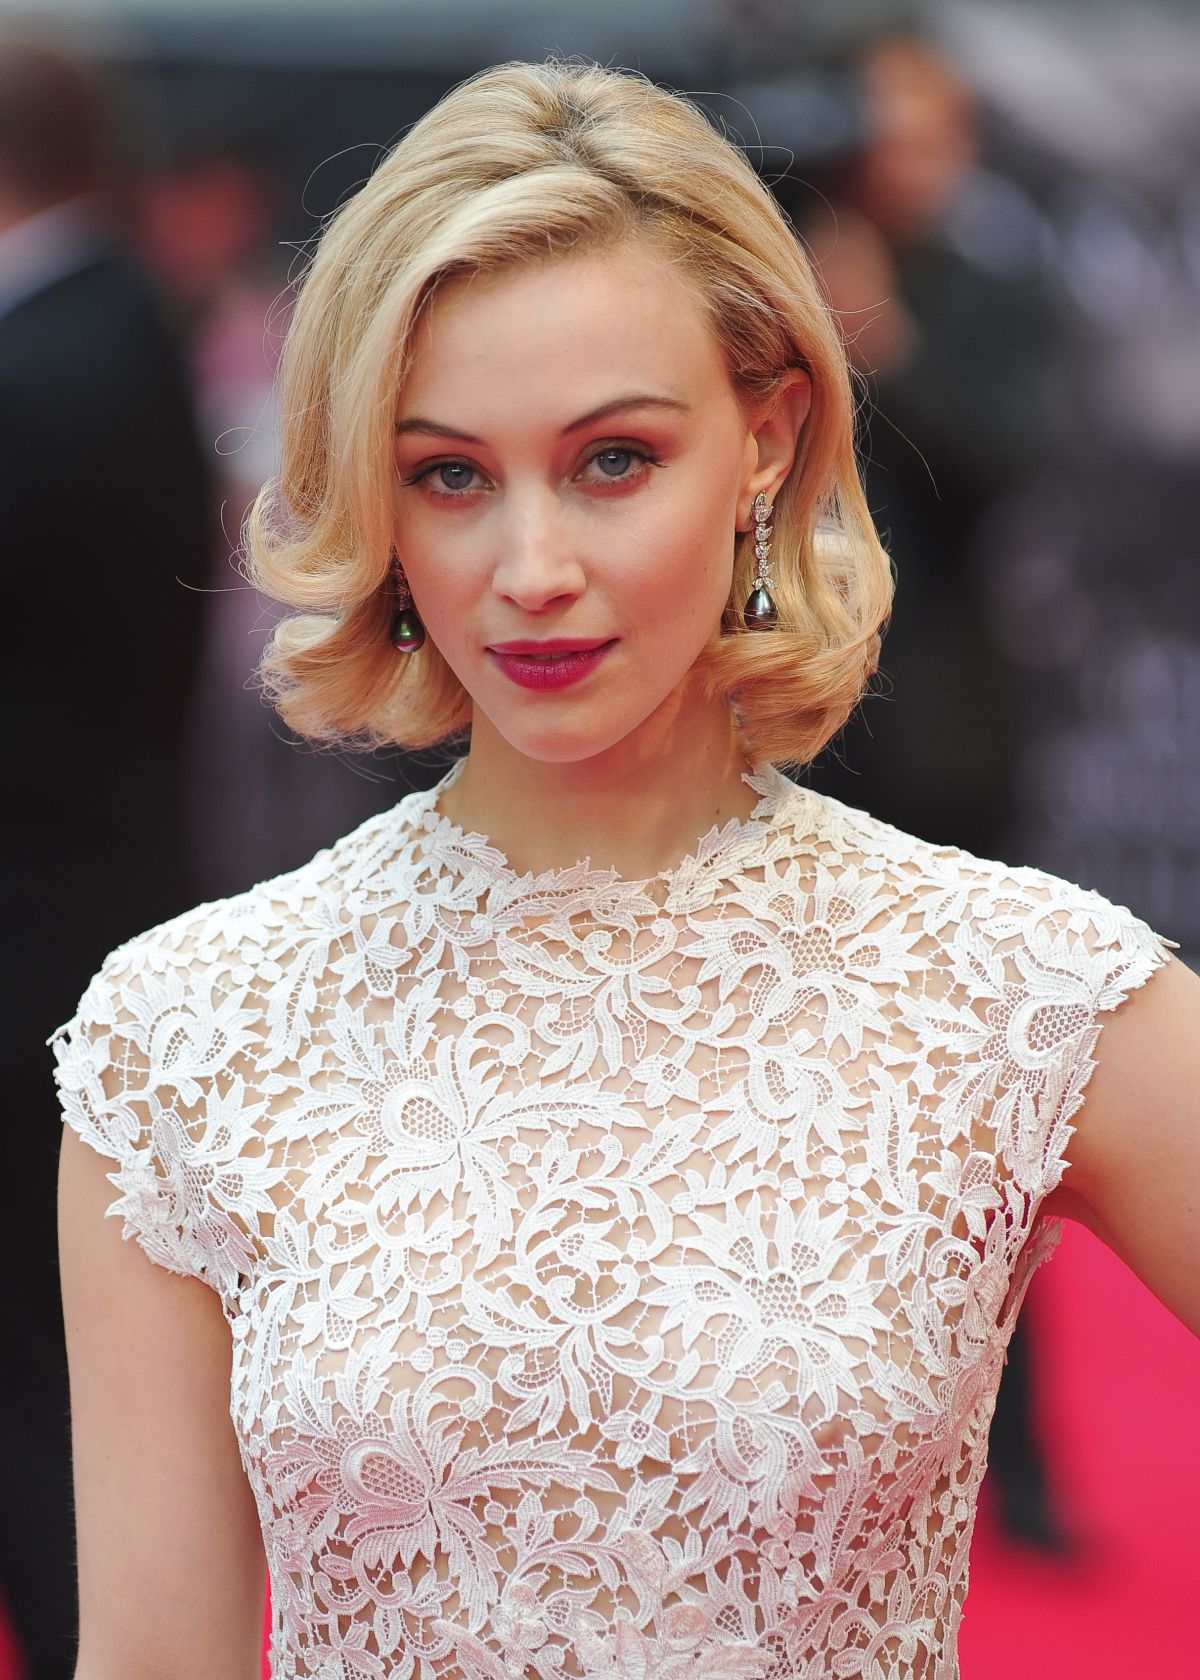 Sarah Gadon Wallpapers High Resolution and Quality Download